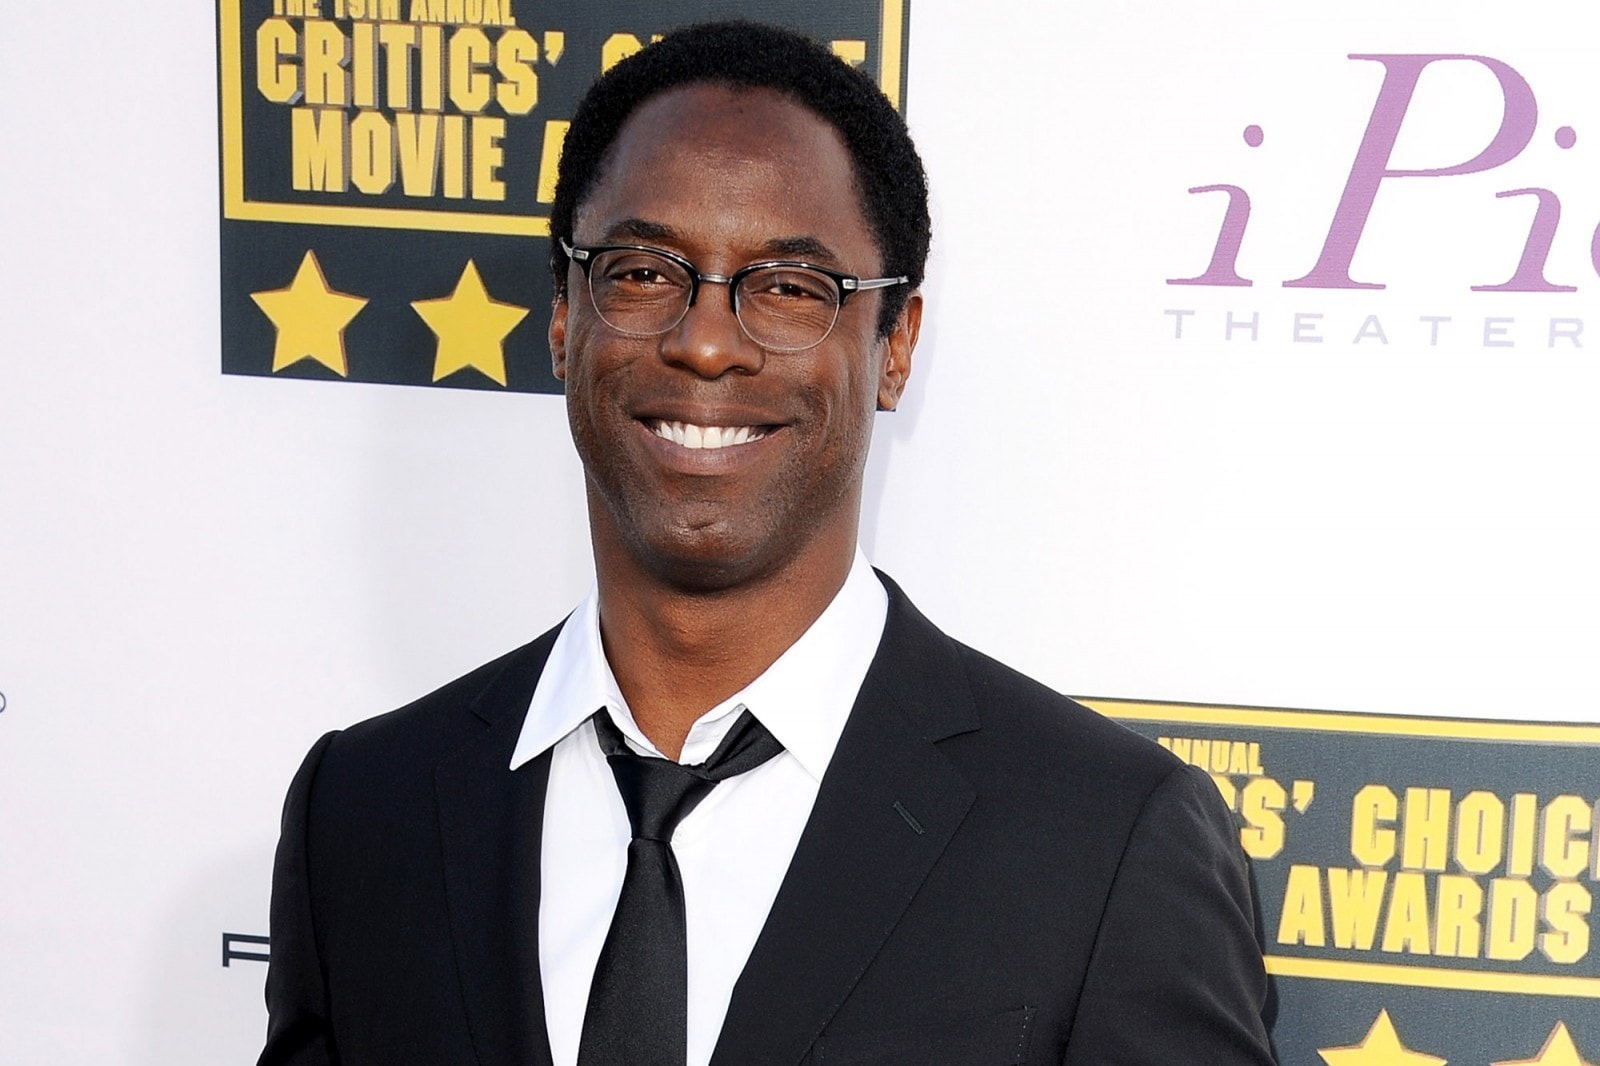 Isaiah Washington Full hd wallpapers